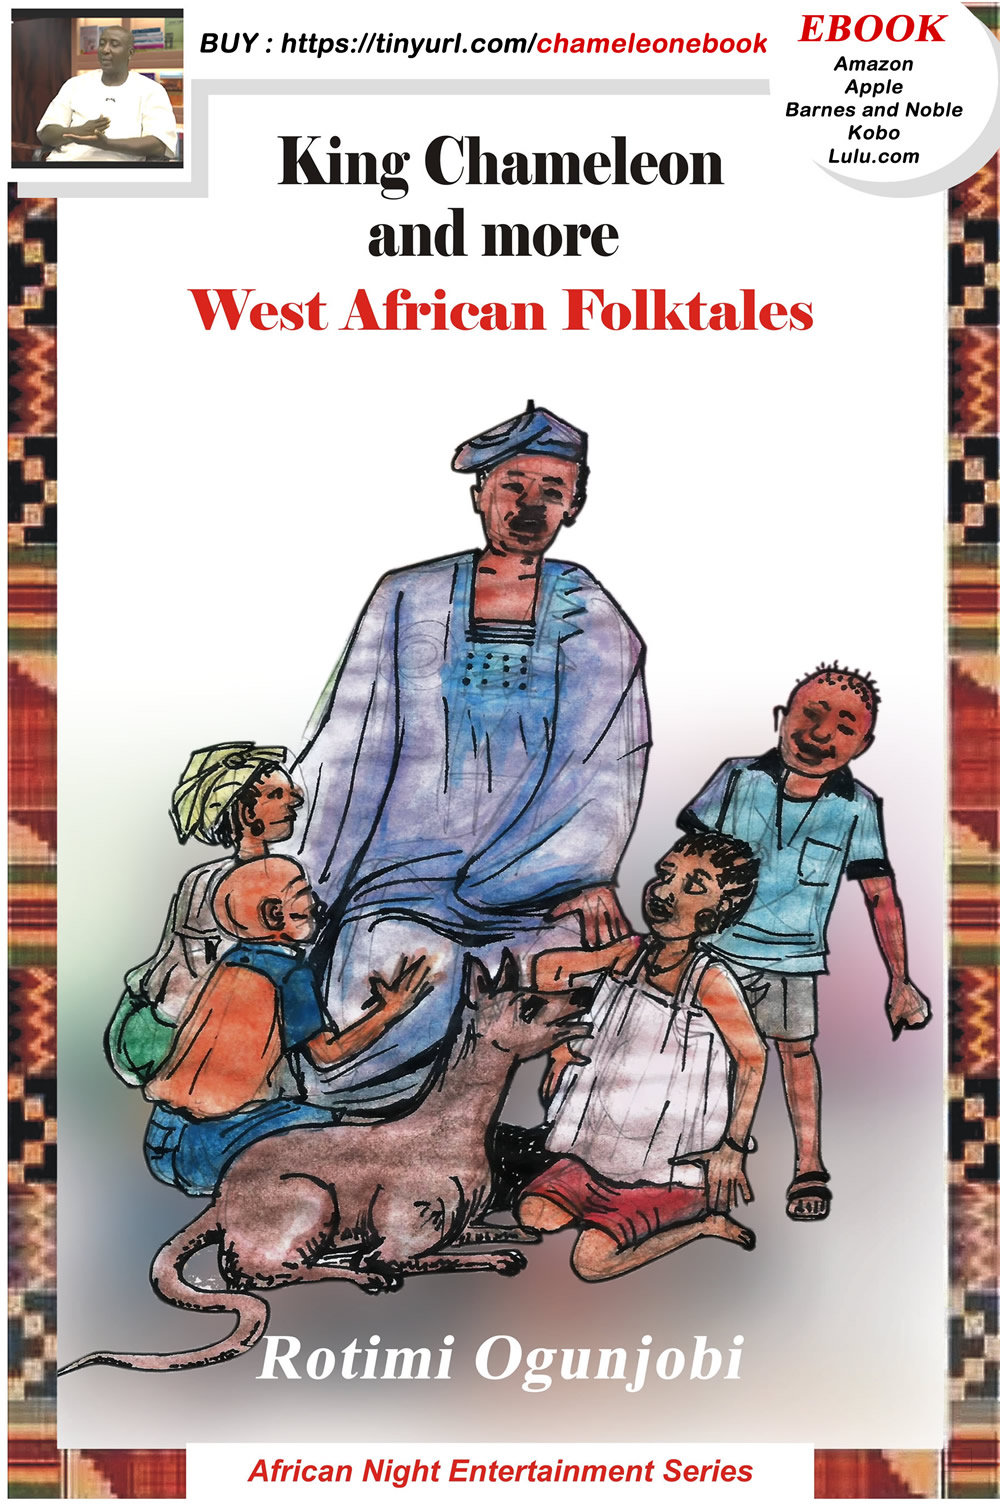 King Chameleon and other West African Folktales 2